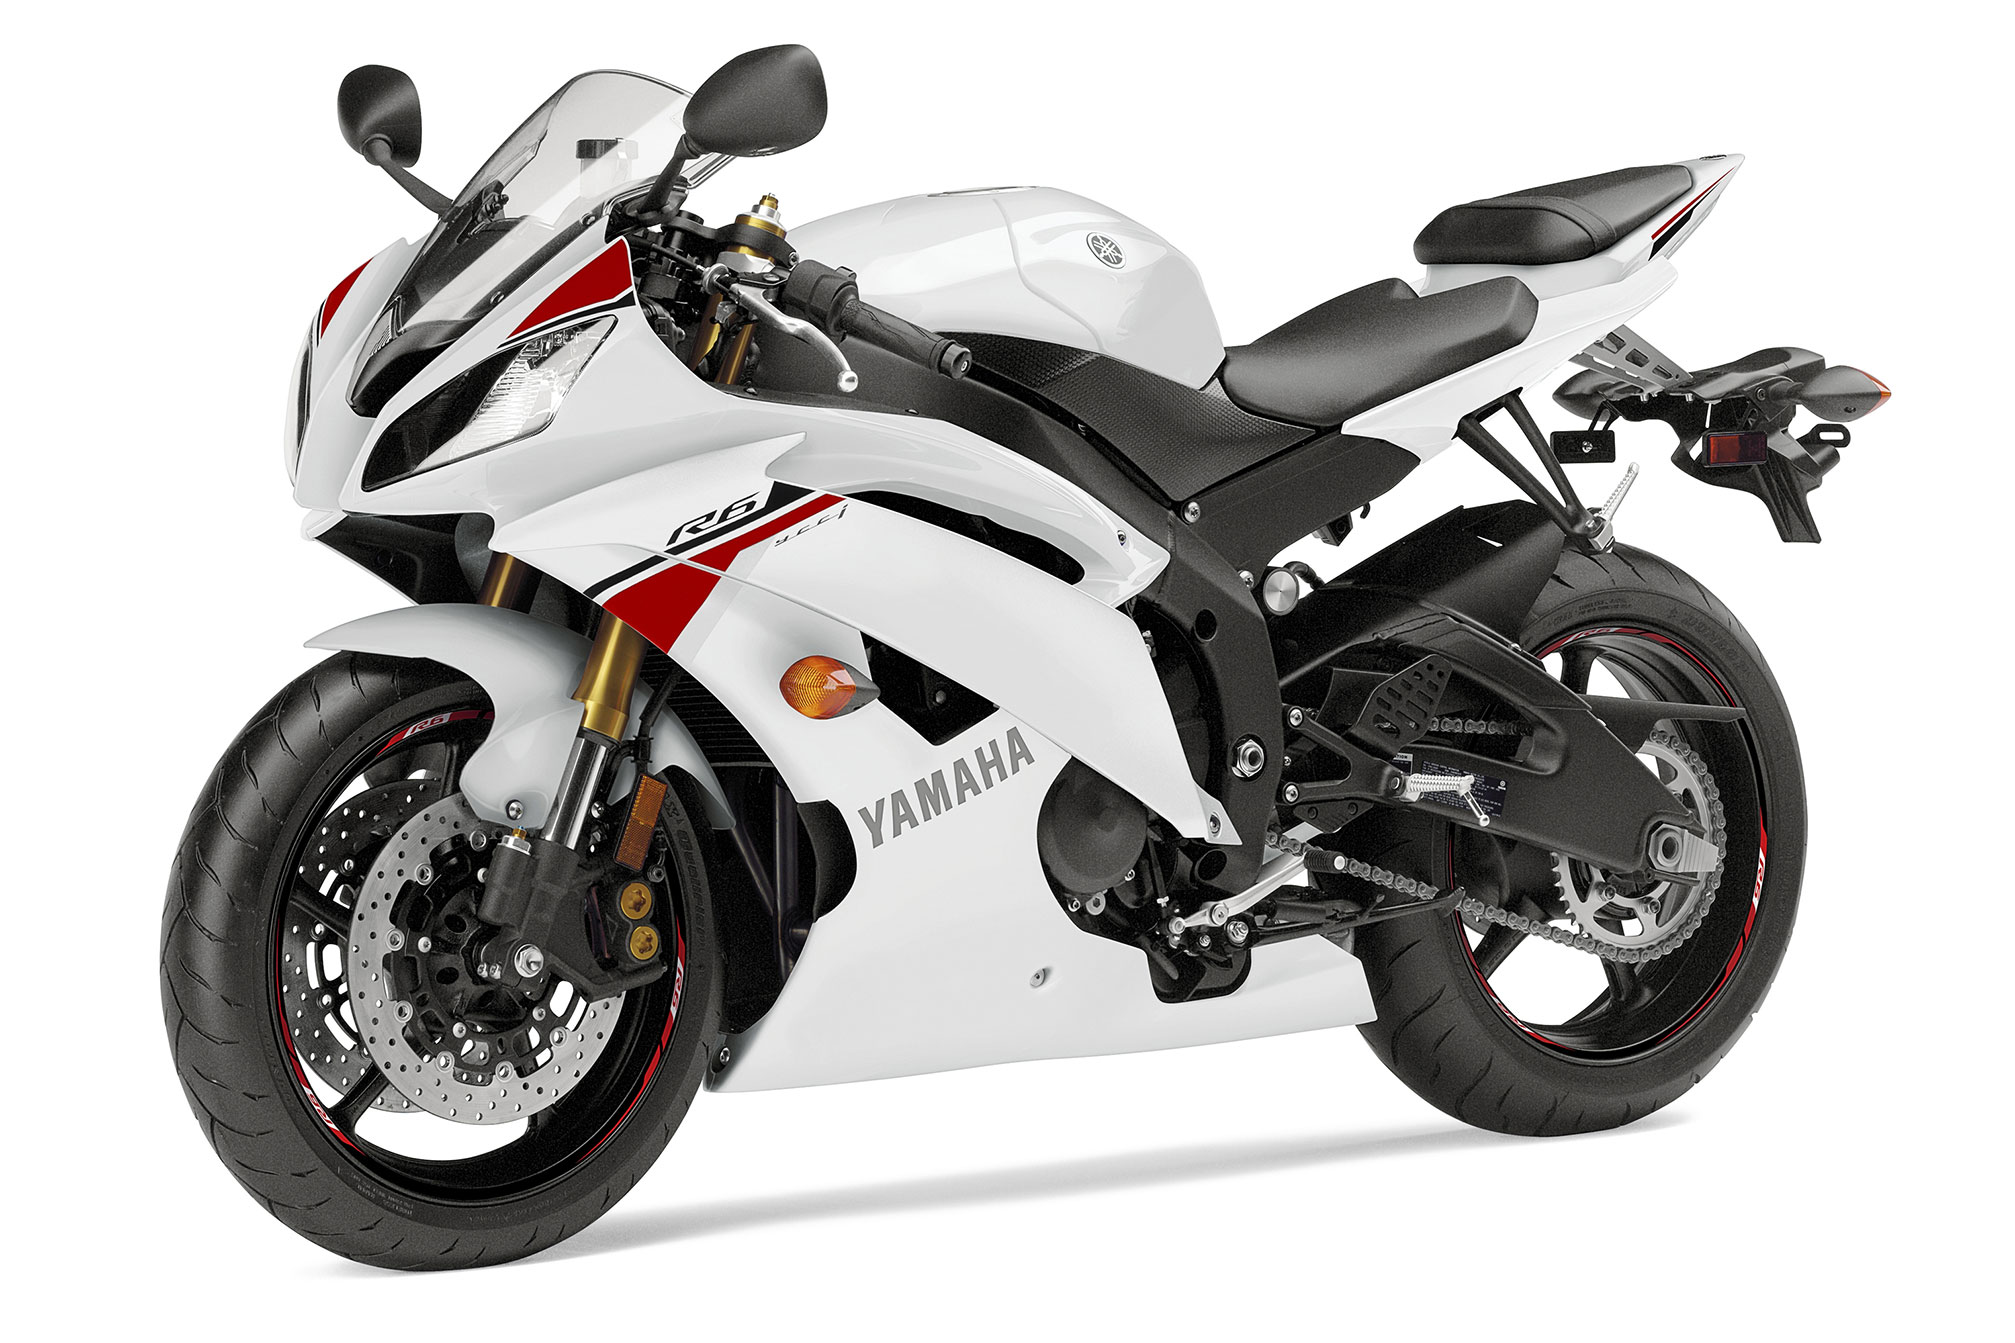 Will the next yamaha yzf r6 look like this bikesrepublic for Yamaha r6 motorcycle